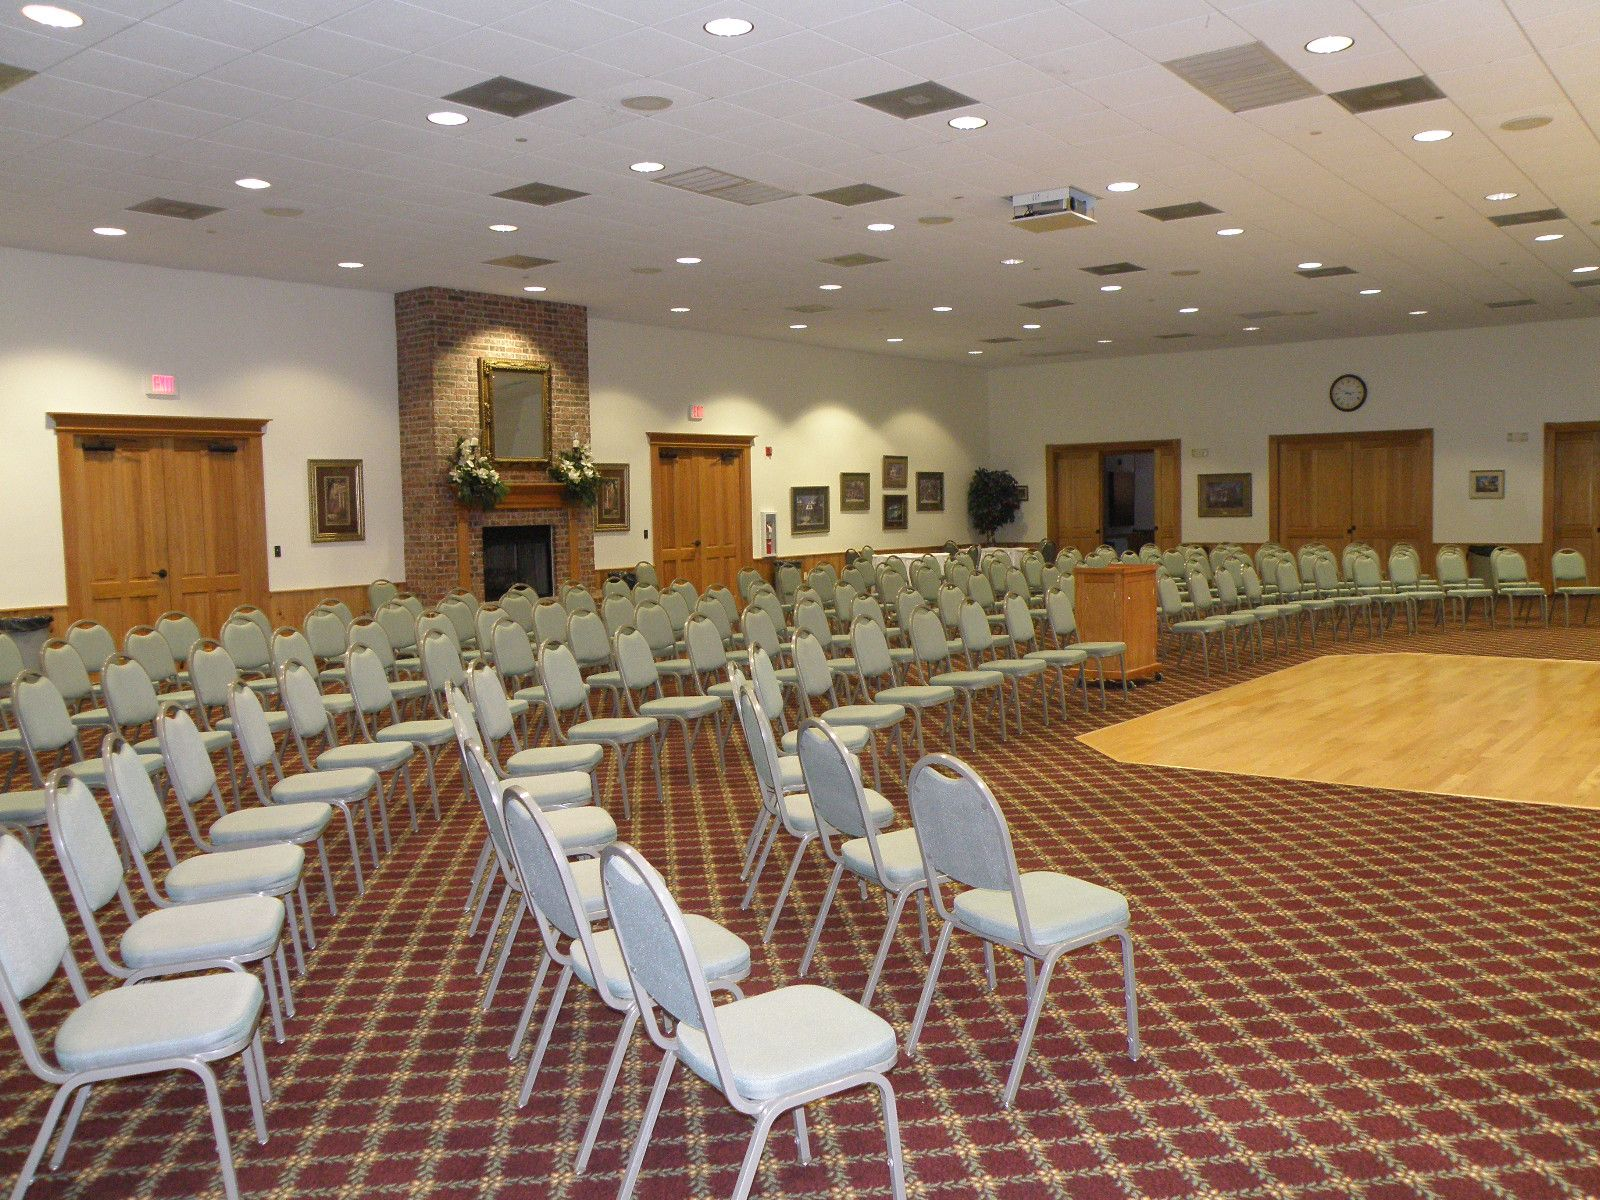 #conference #conferencecenter #westbatonrouge #portallen #businesscenter #banquet #convention #eventplanning #event